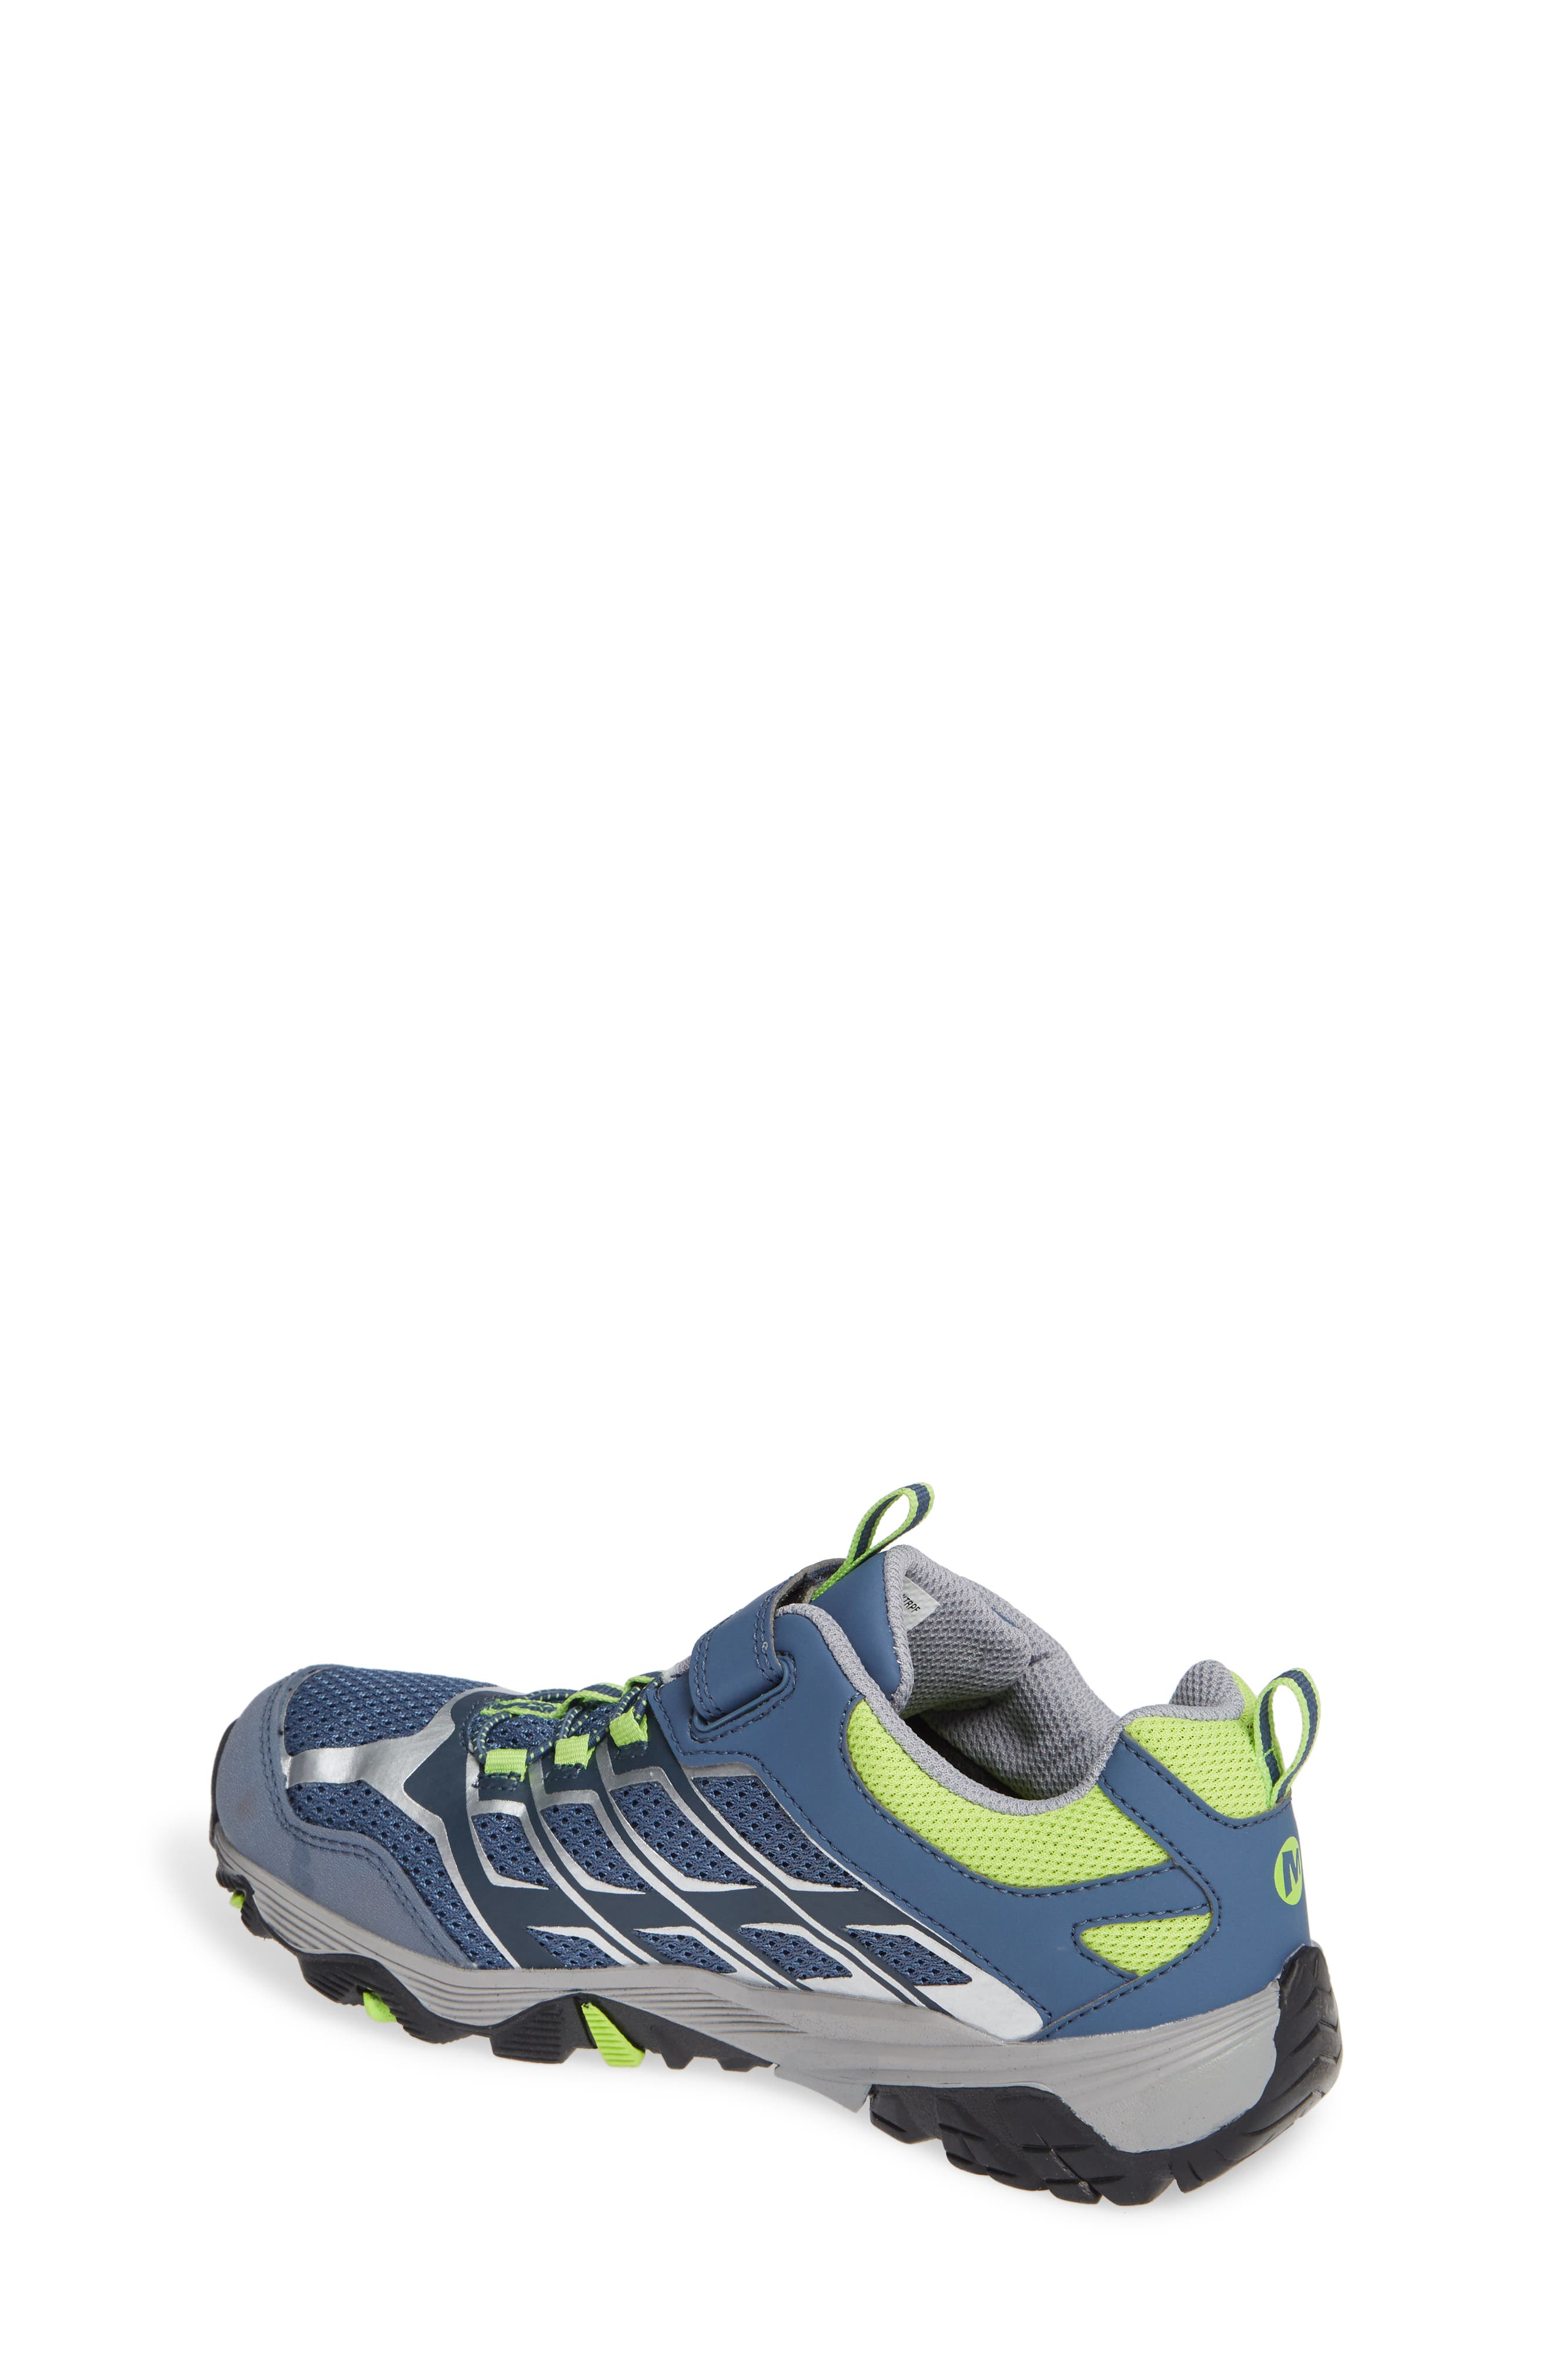 Moab FST Polar Low Waterproof Sneaker,                             Alternate thumbnail 2, color,                             GREY/ GREEN